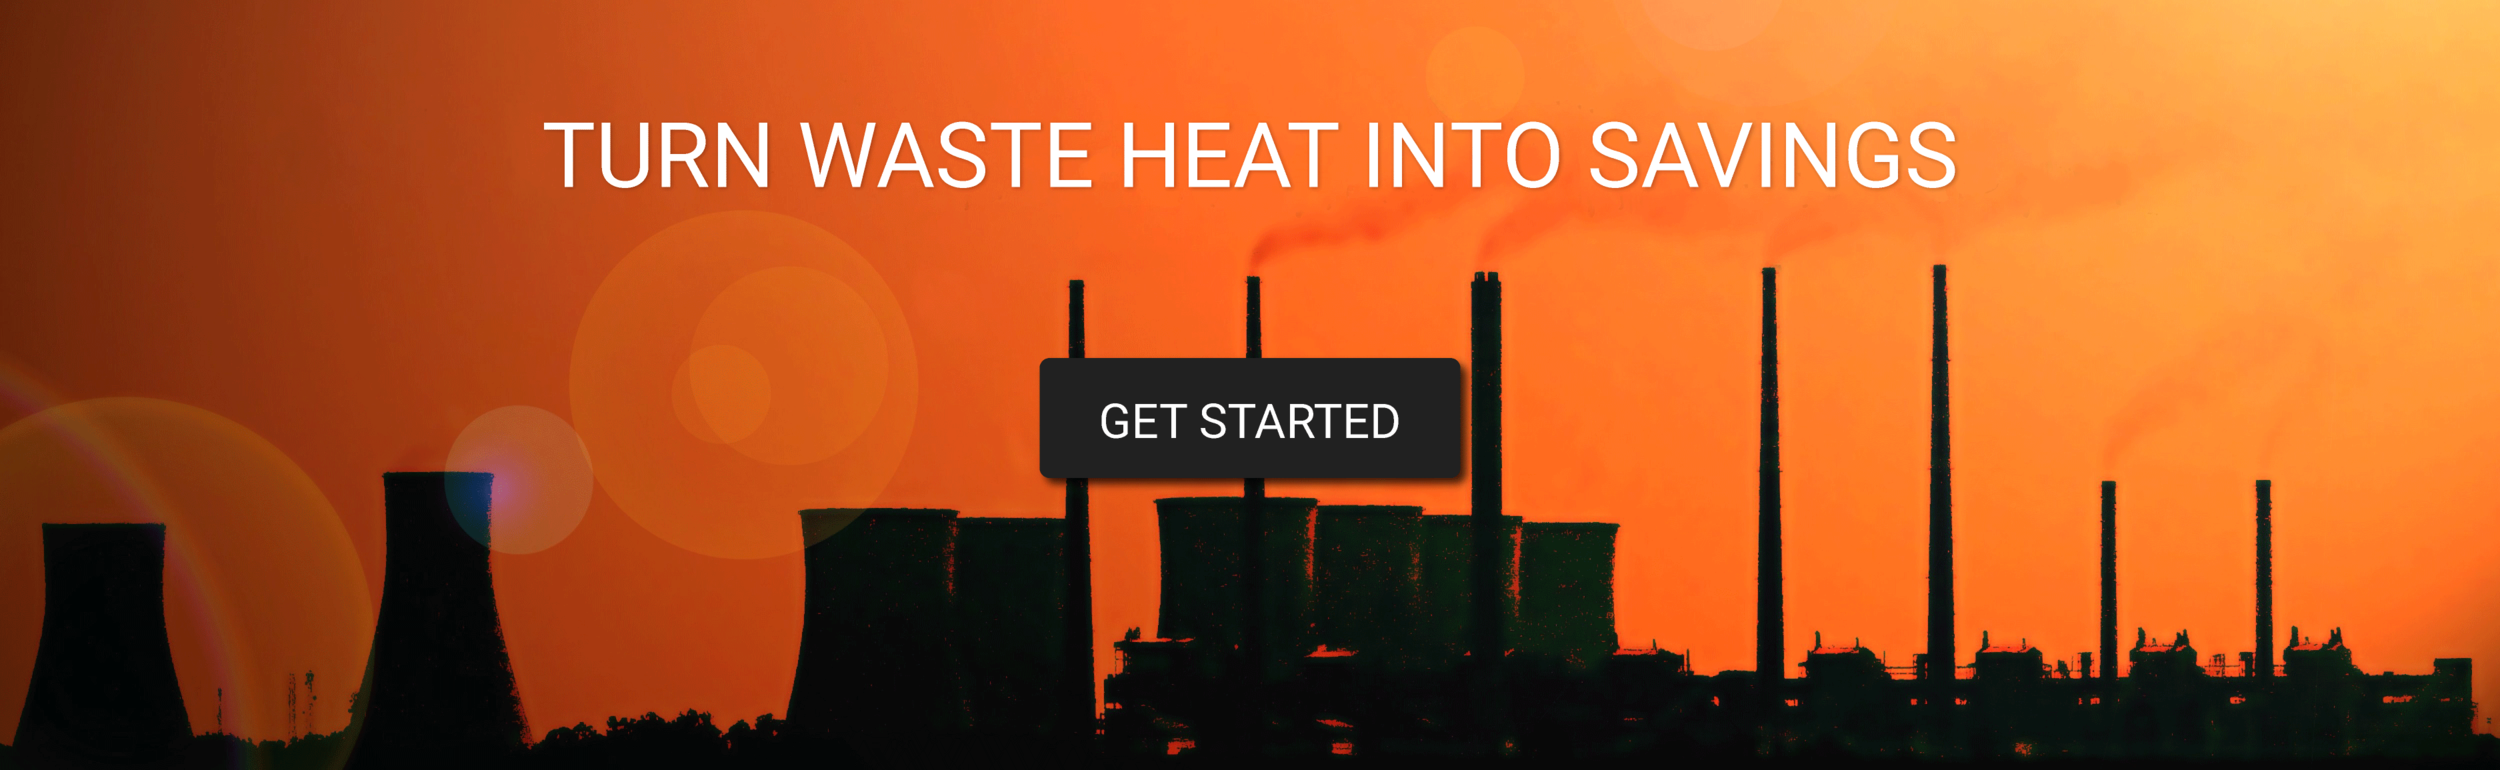 waste_heat_recovery_to_savings